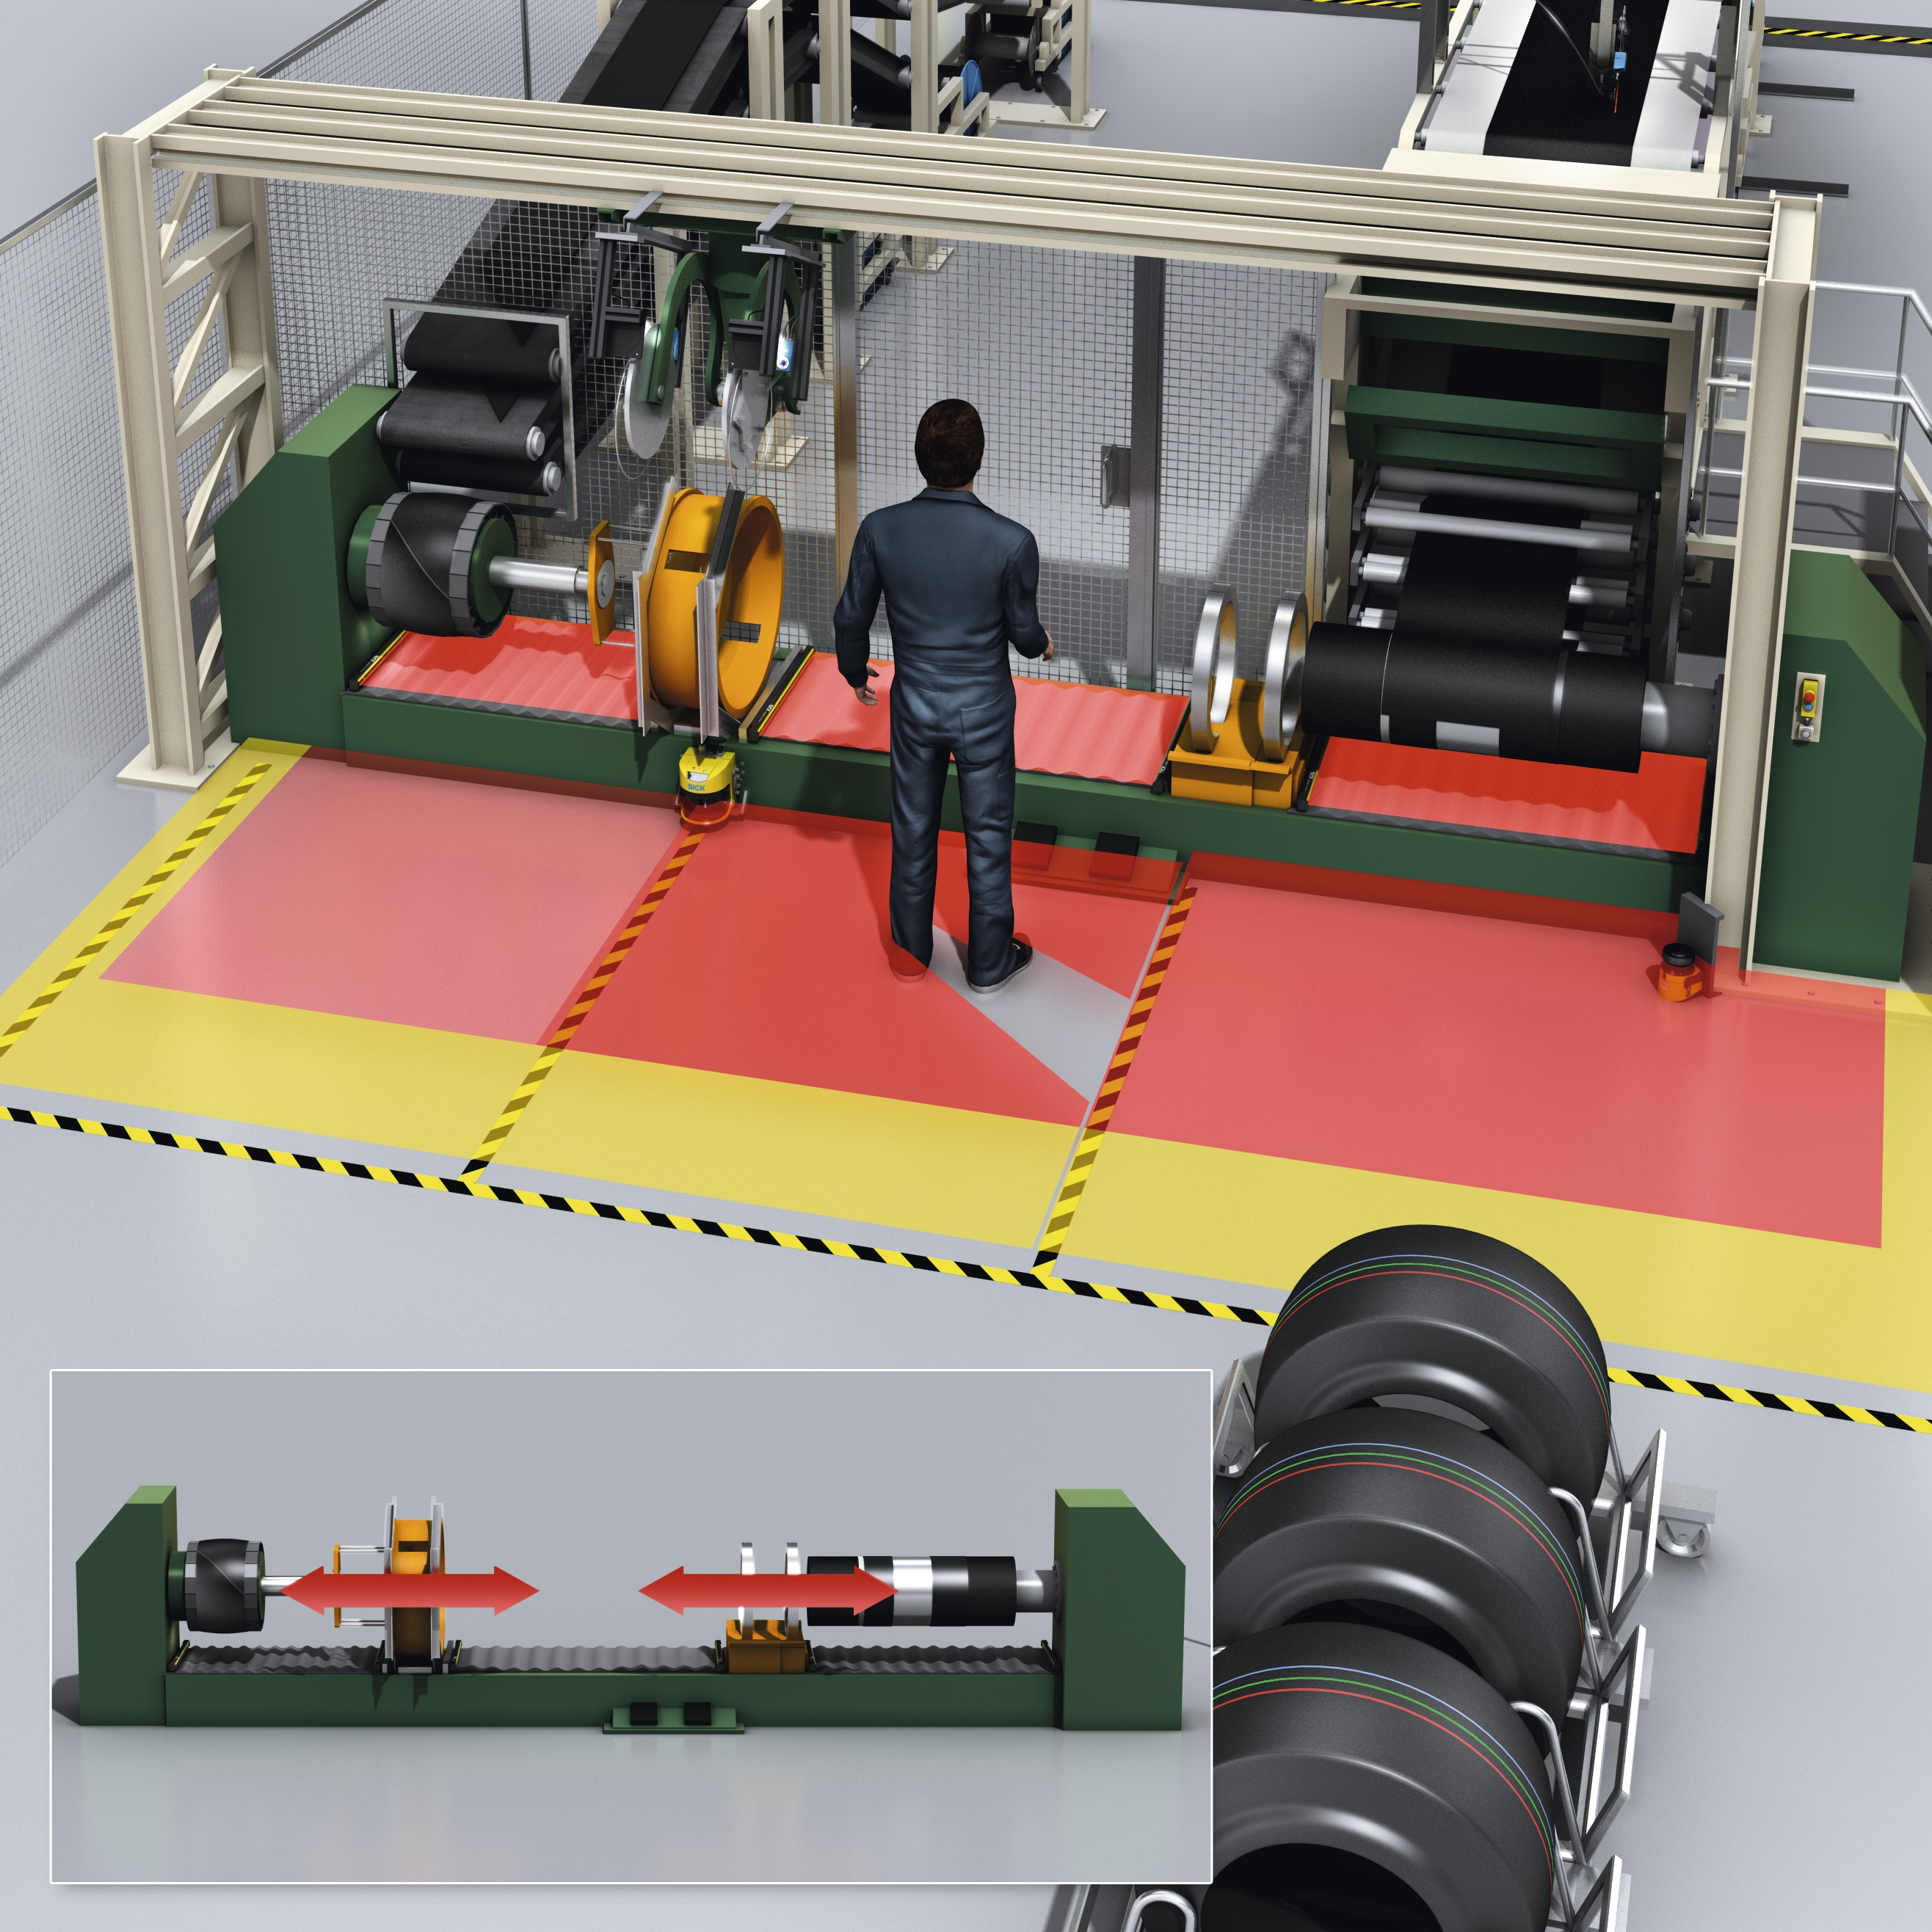 automotive safety solutions, Paving the way for simple safety solutions